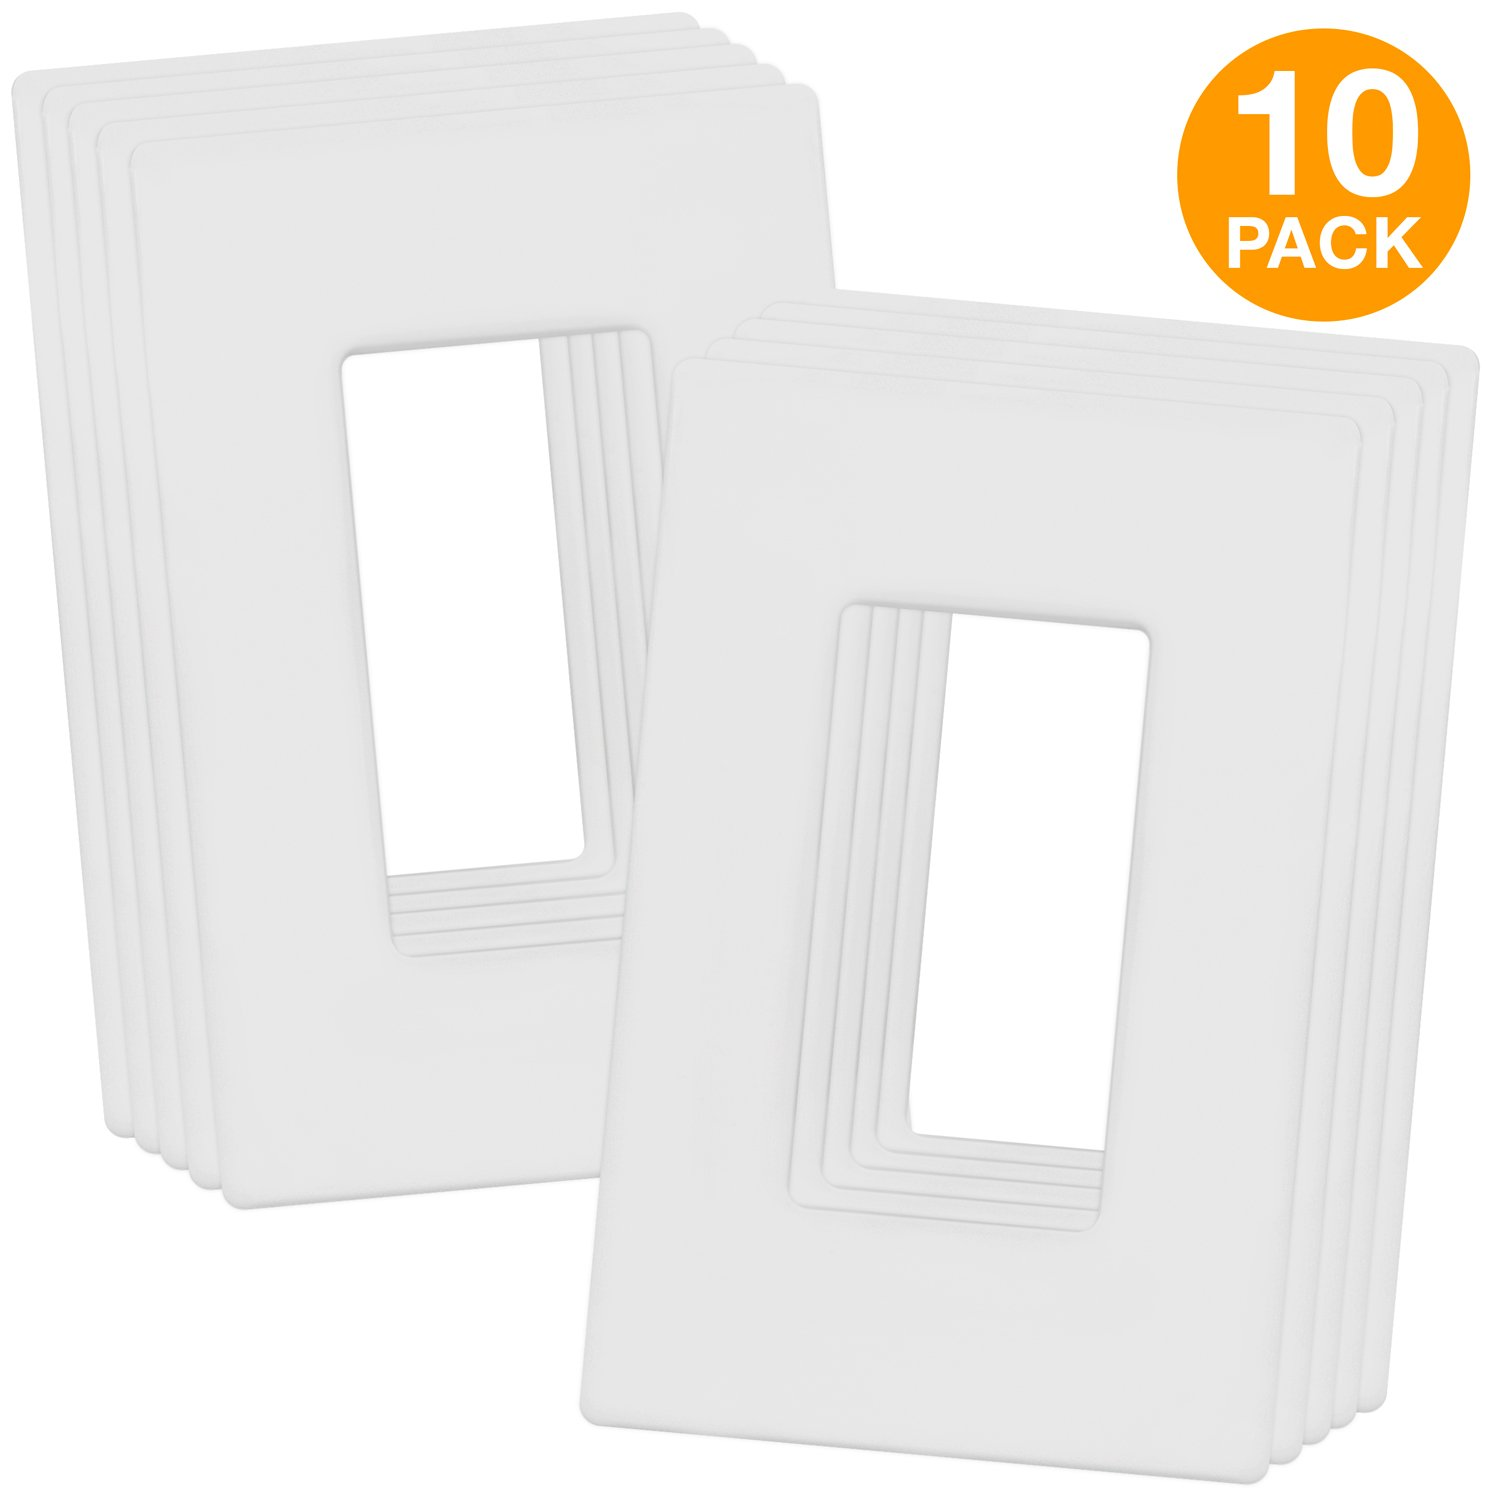 Enerlites SI8831-W-10PCS Screwless Decorator Wall Plates Child Safe Outlet Covers, 1-Gang Standard Size, Unbreakable Polycarbonate Thermoplastic, White (10 Pack)